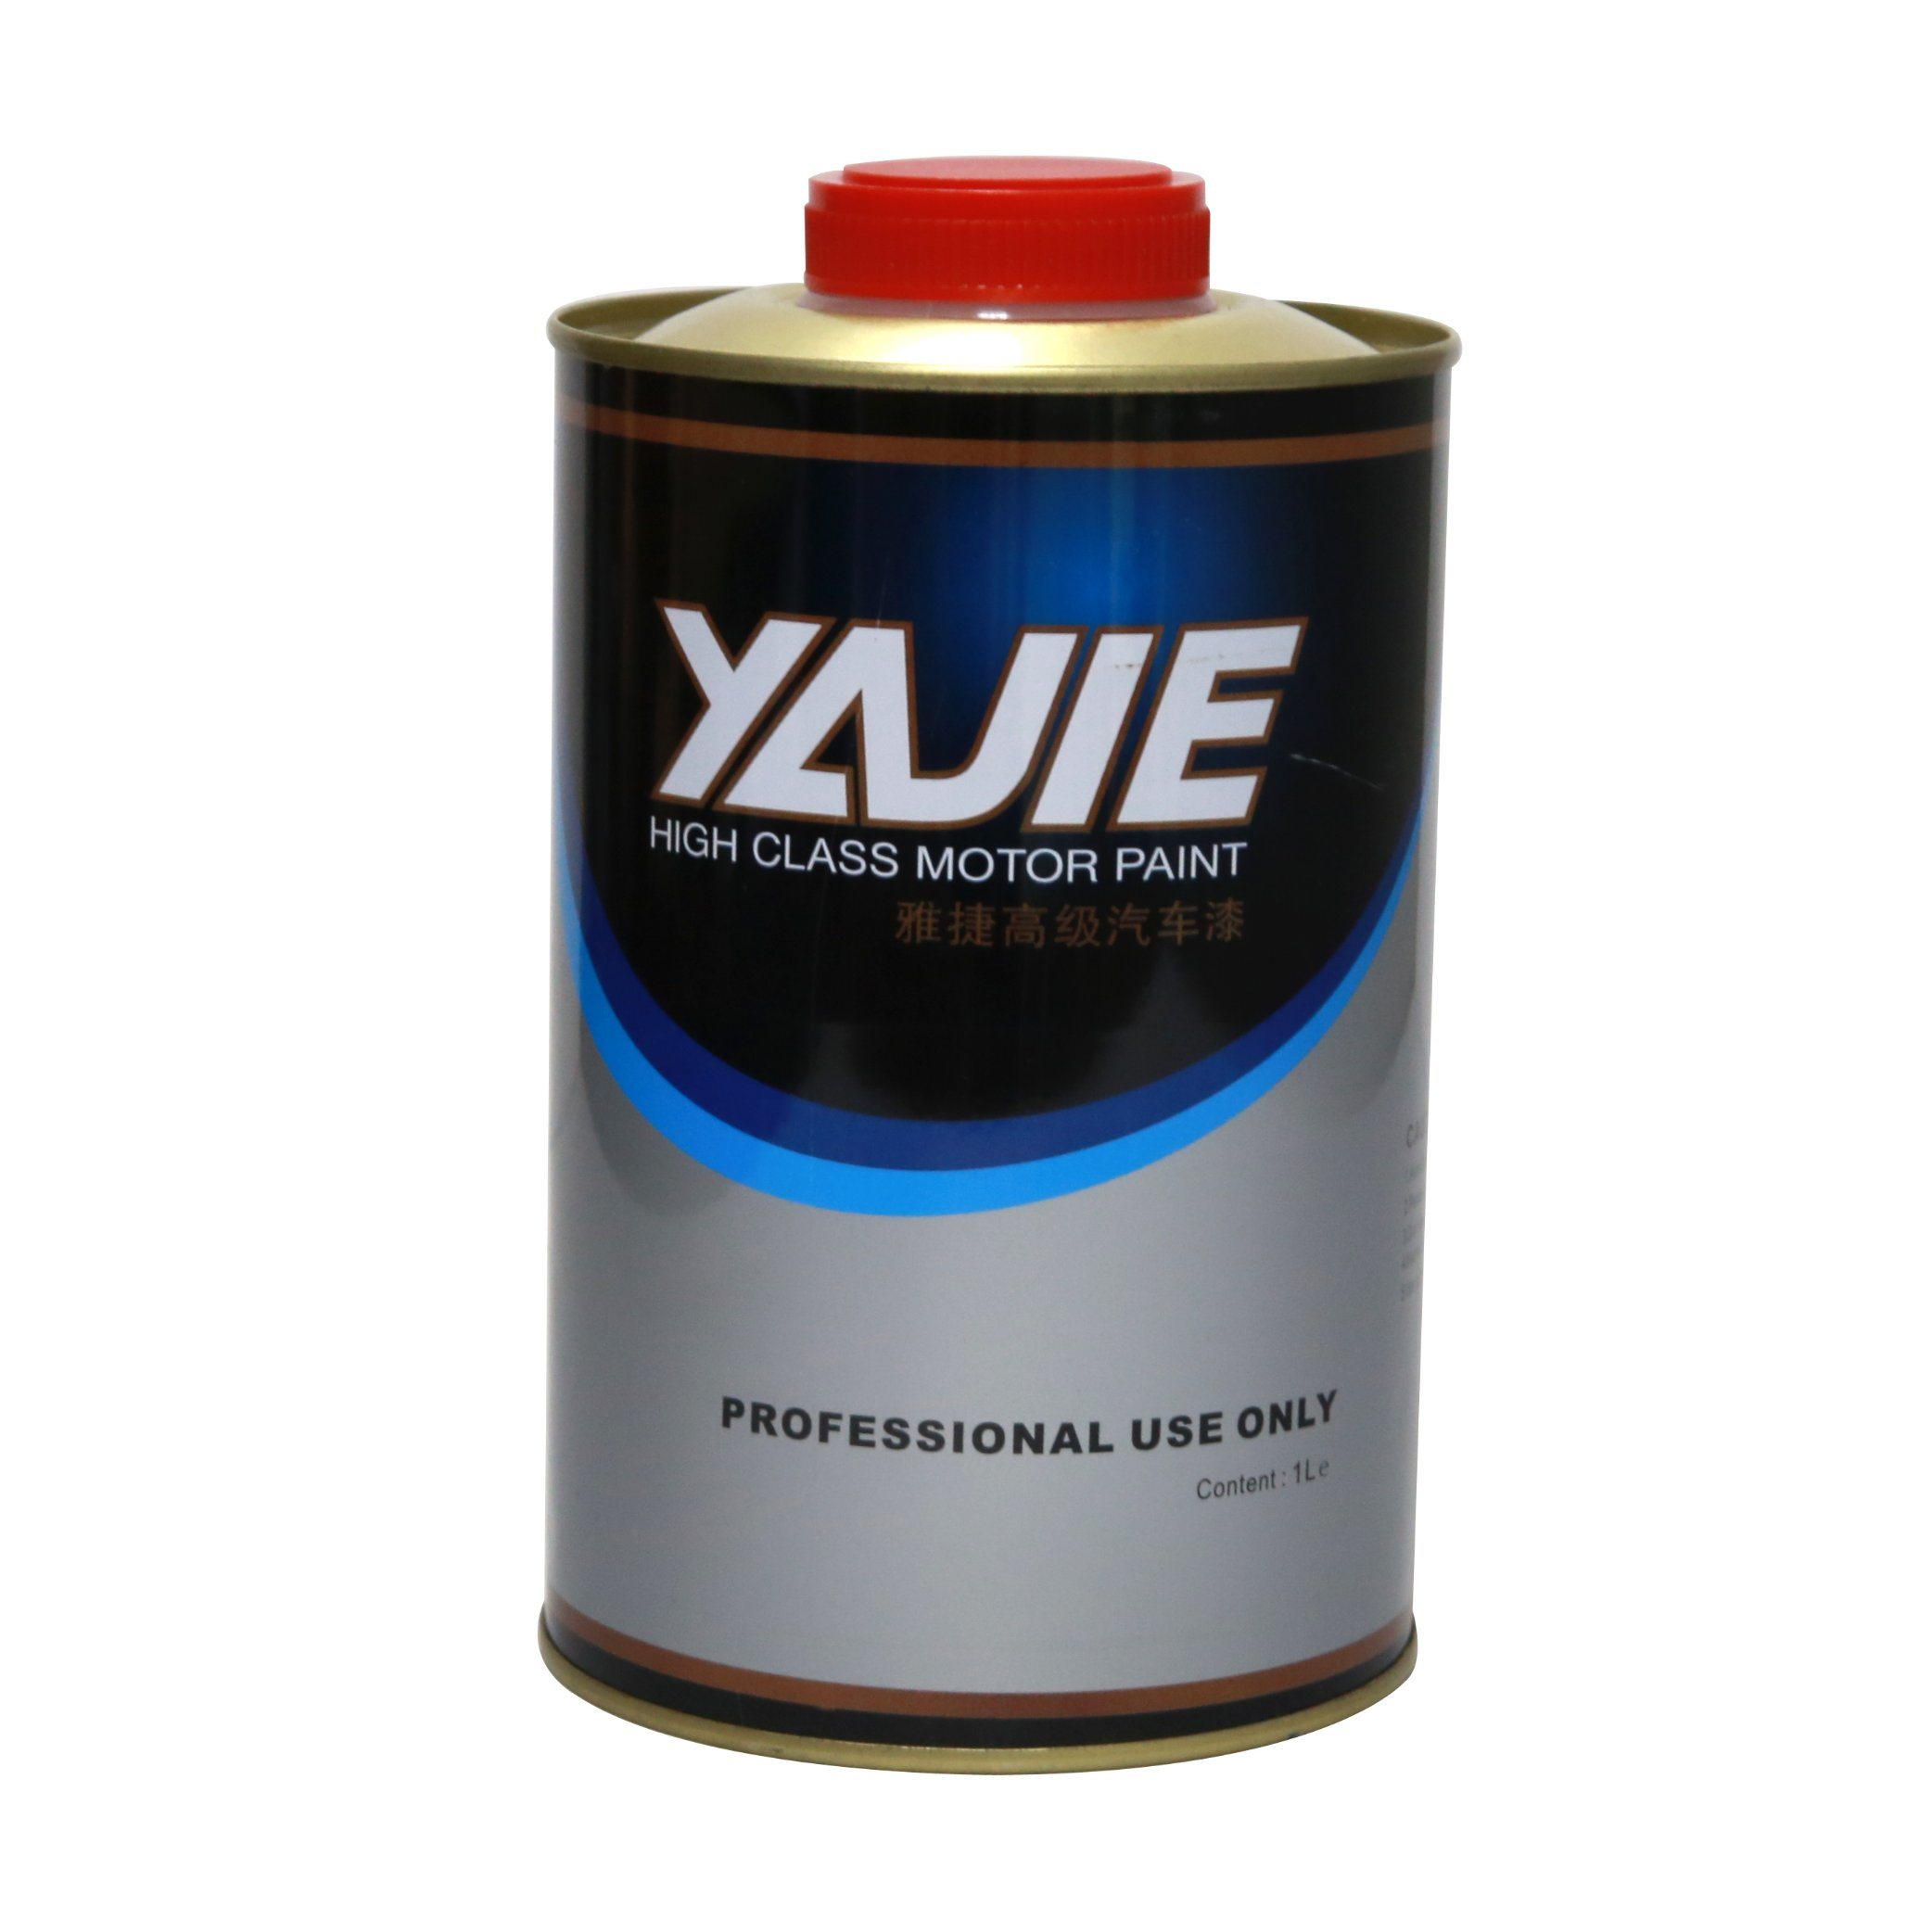 Yajie Liquid State Paint Hardener for 2k Primer